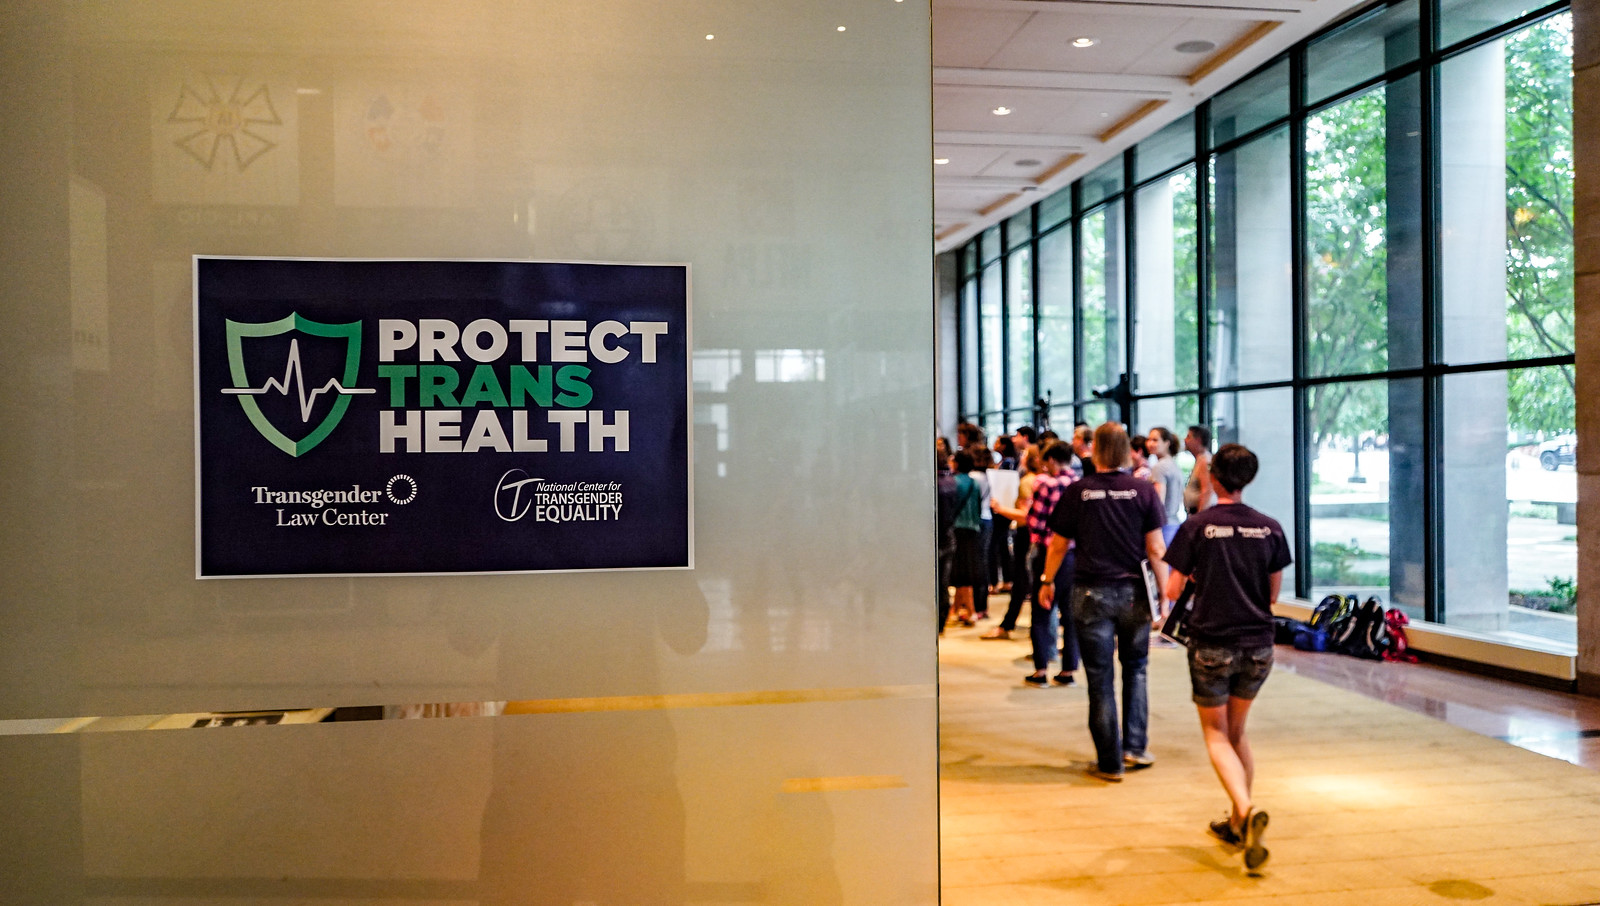 2018.07.17 #ProtectTransHealth Rally, Washington, DC USA 04685